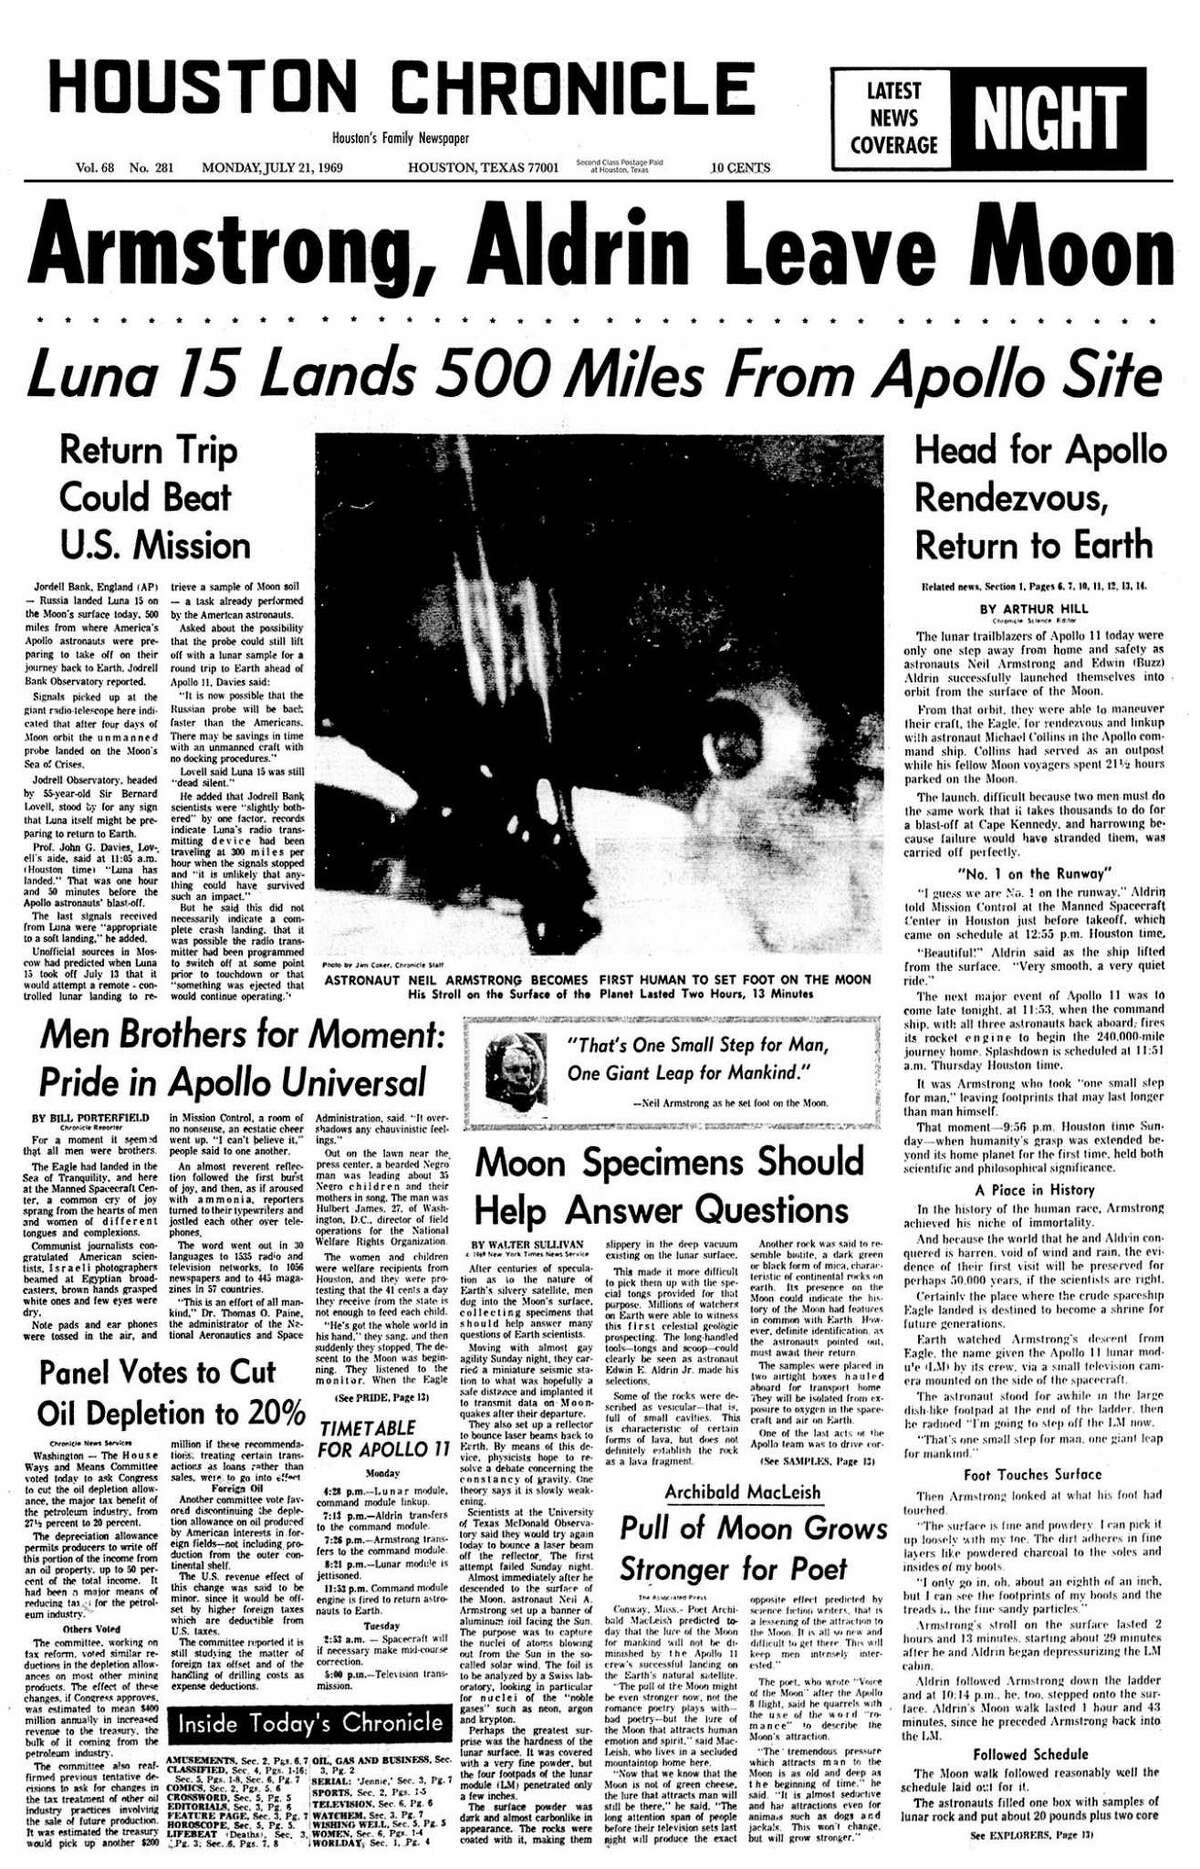 Houston Chronicle front page Monday, July 21, 1969. Apollo 11 returning to Earth.